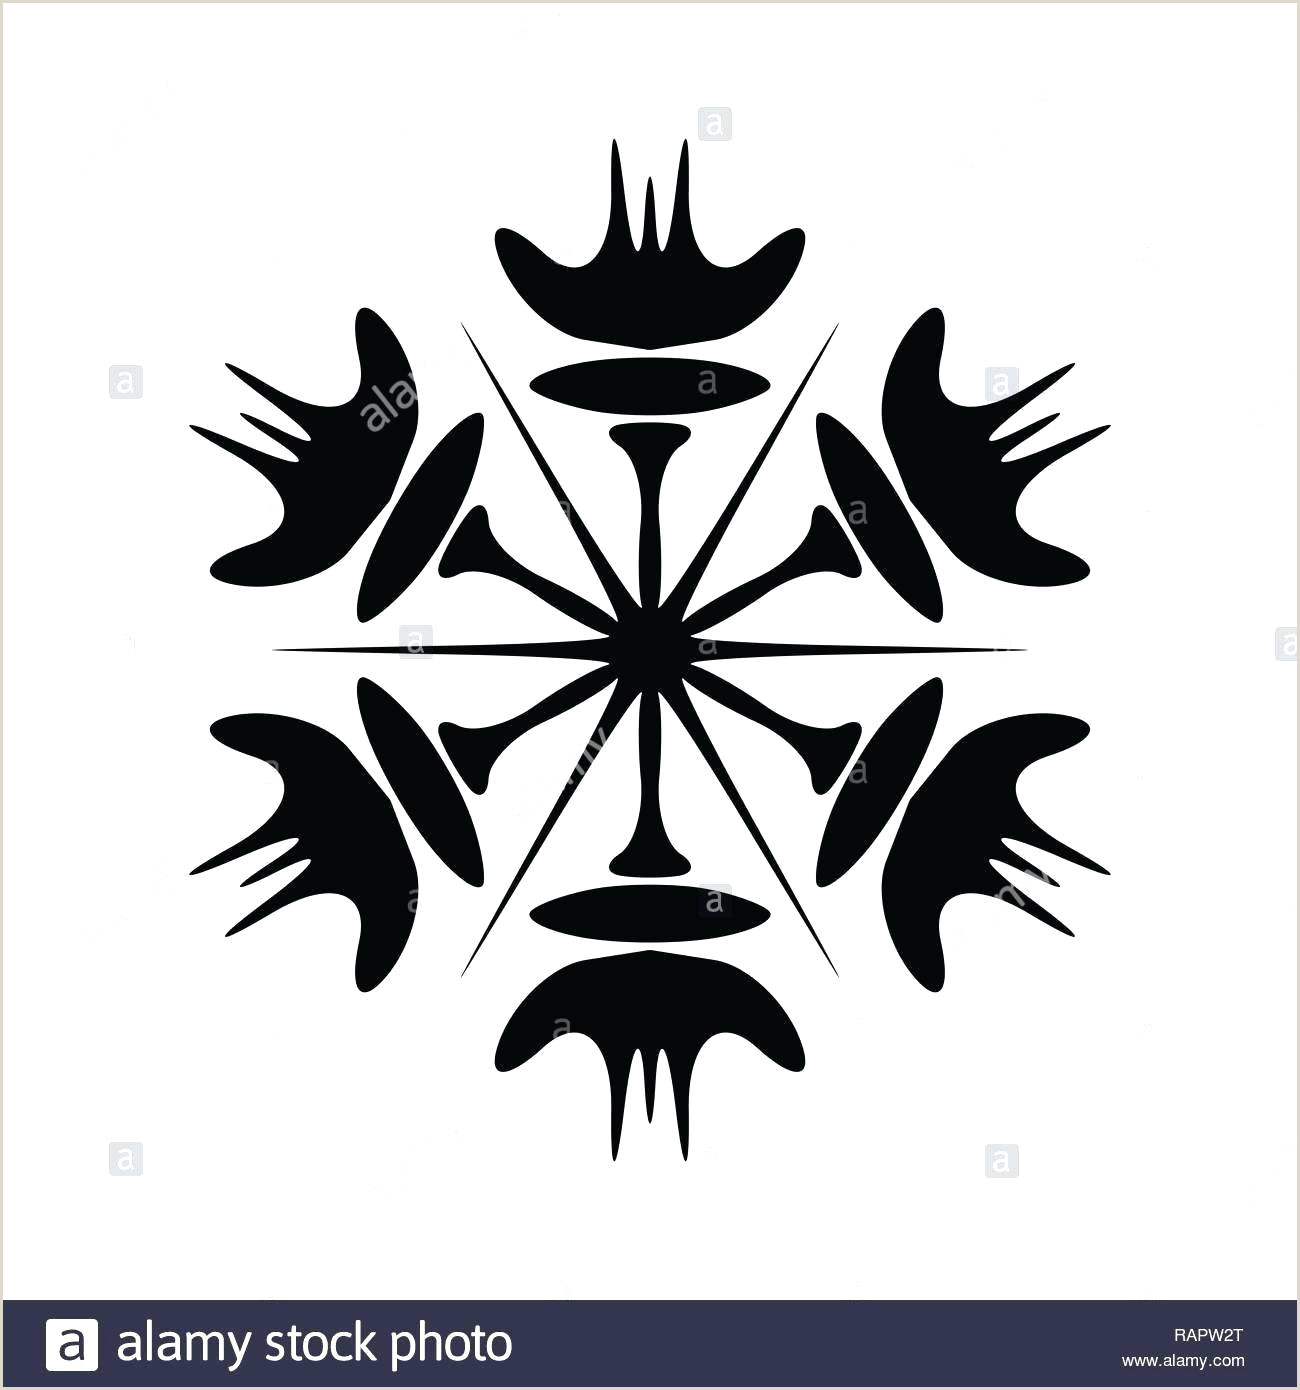 Snowflake Template for Icing Simple Snowflake Template – Deucesheet